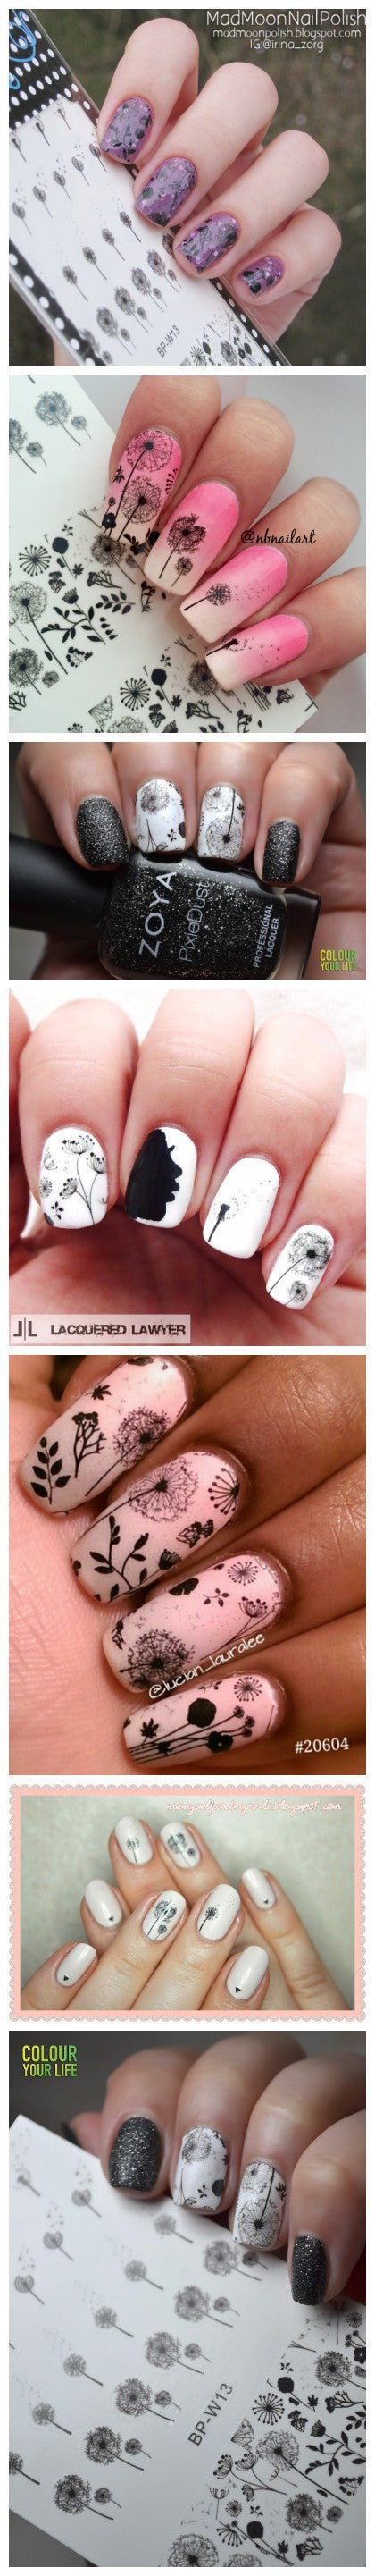 Flying Dandelion Nail Art Water Decals Transfer Sticker Manicure ...